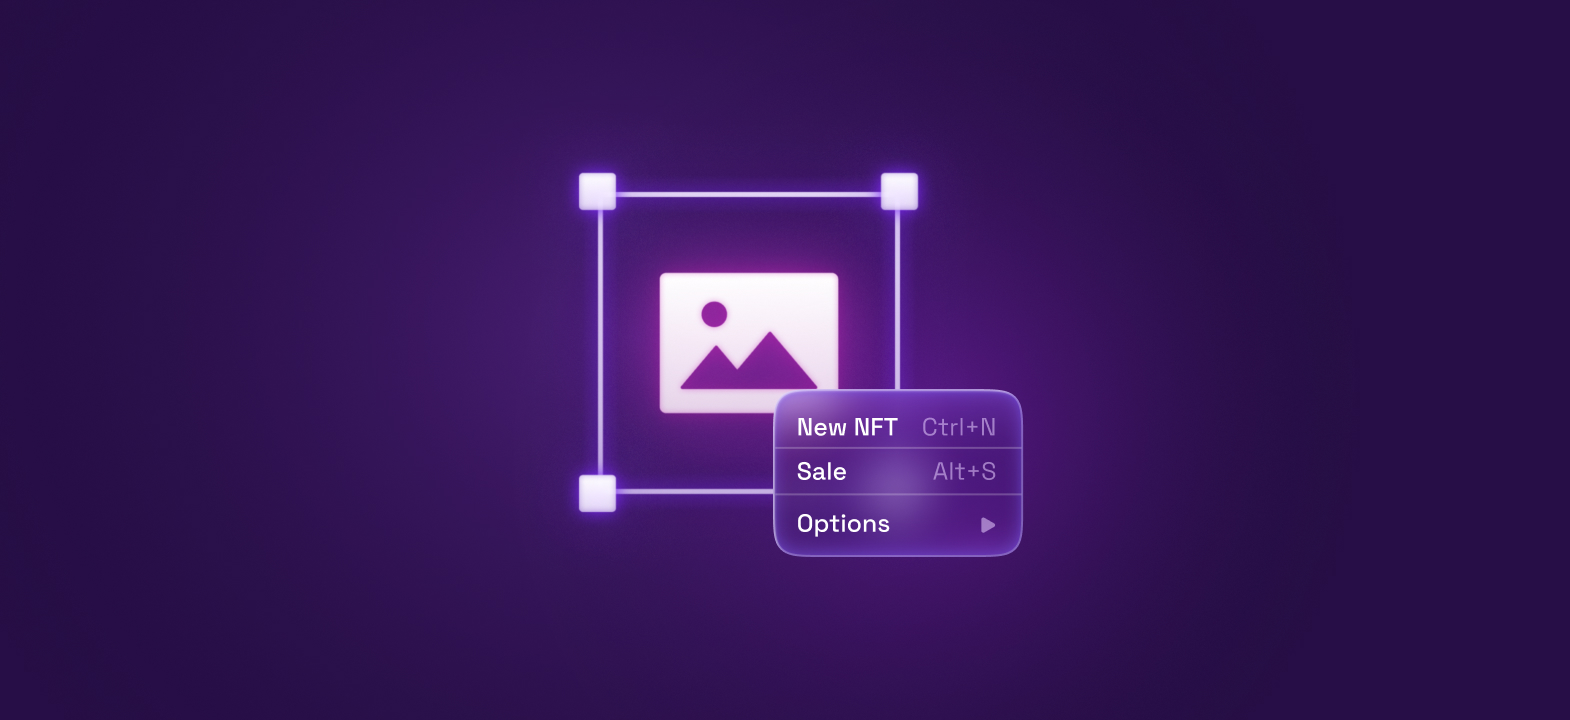 How To Create And Sell Your Own NFT